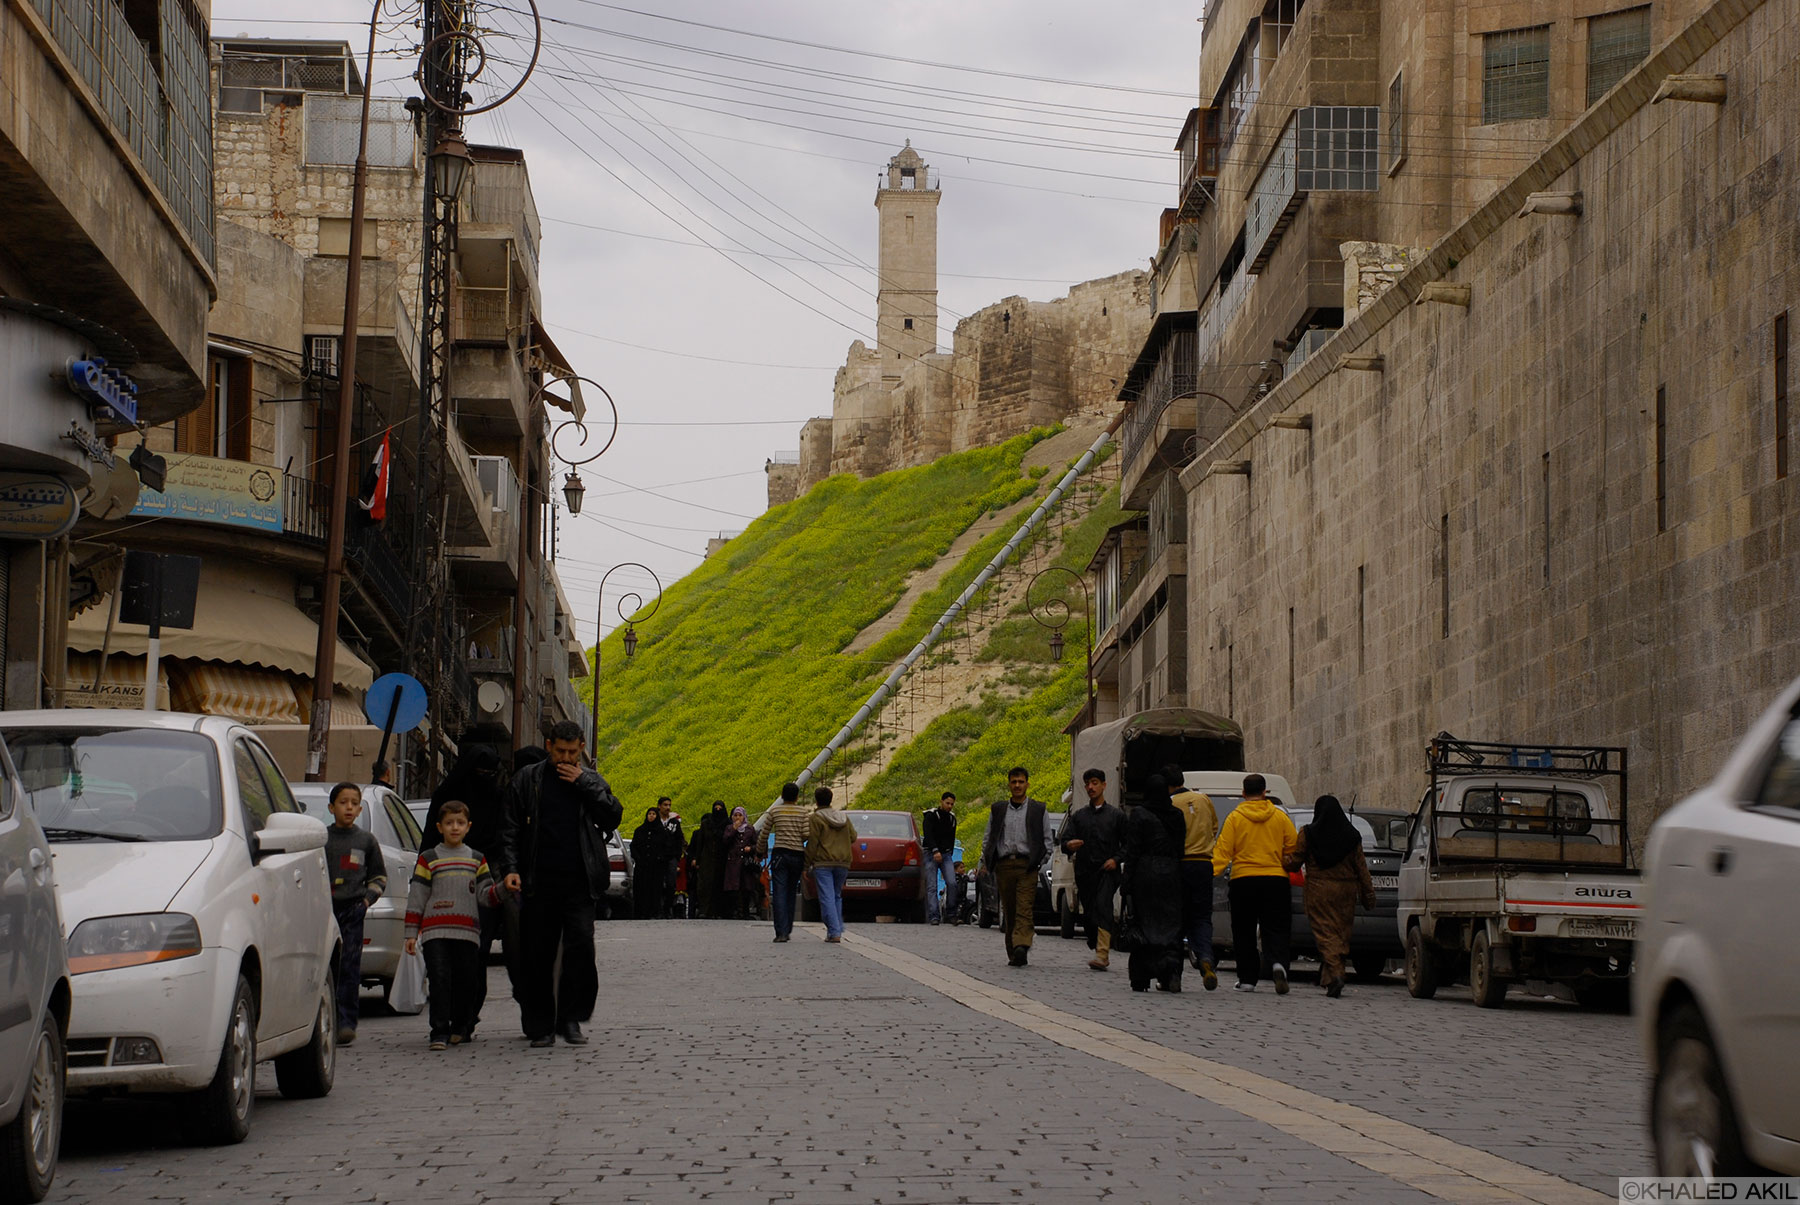 """Aleppo became part of the Ottoman Empire in 1516, when the city had around 50,000 inhabitants. It was the centre of the Aleppo Eyalet """"province"""""""